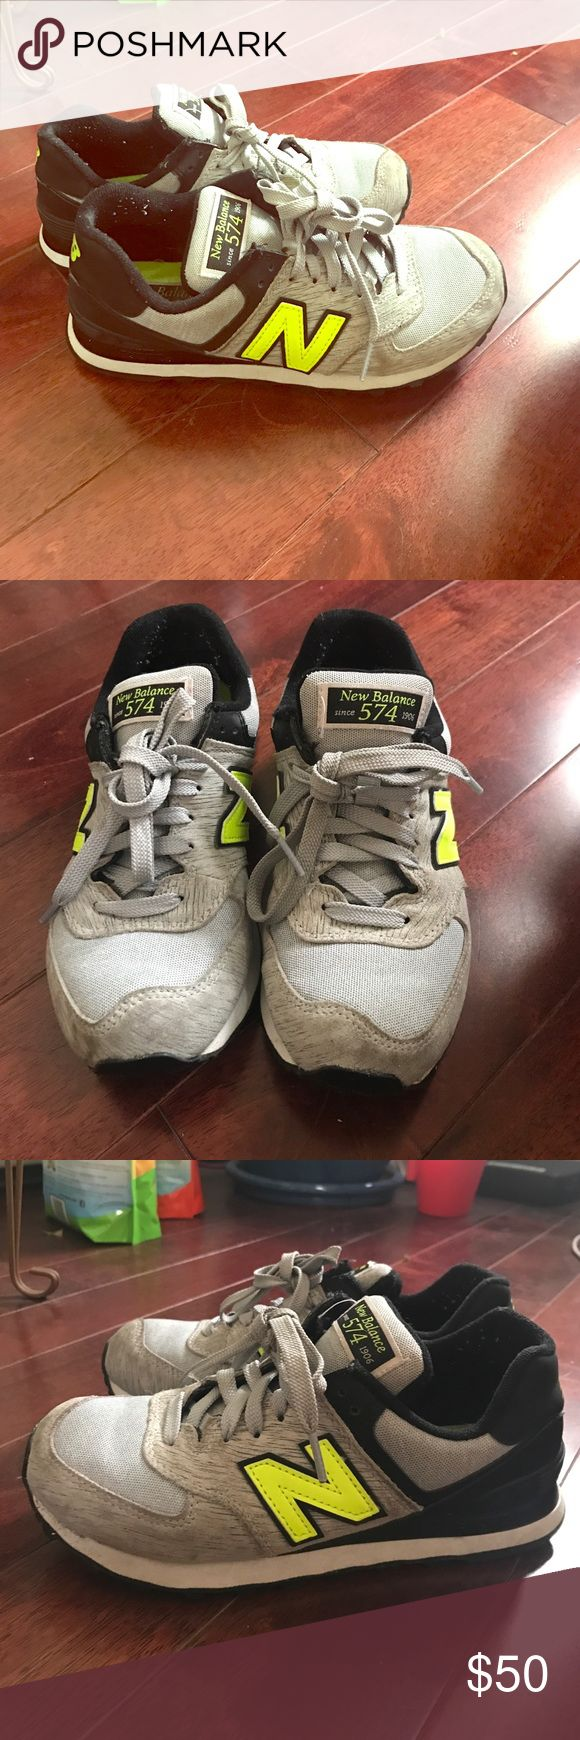 New Balance Gray and Neon Sneakers Pair of New Balance 574 sneakers. Gray with neon N. In good condition. May require some polishing. New Balance Shoes Sneakers